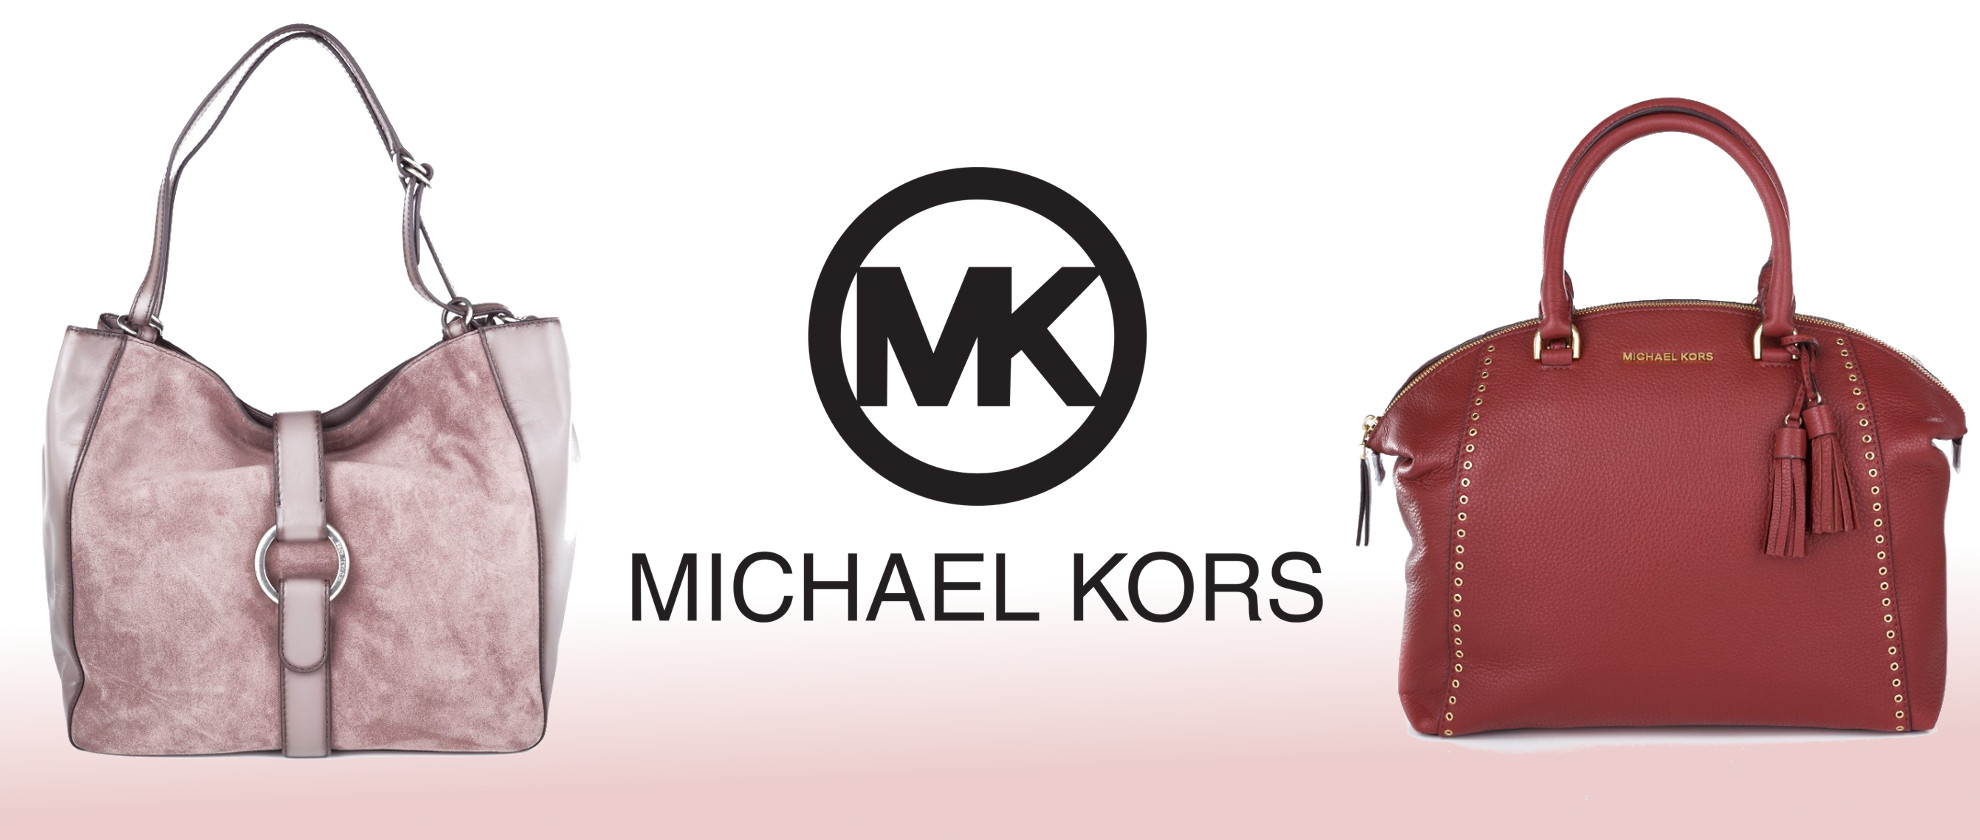 Staff Pick: Make Yours a Michael Kors